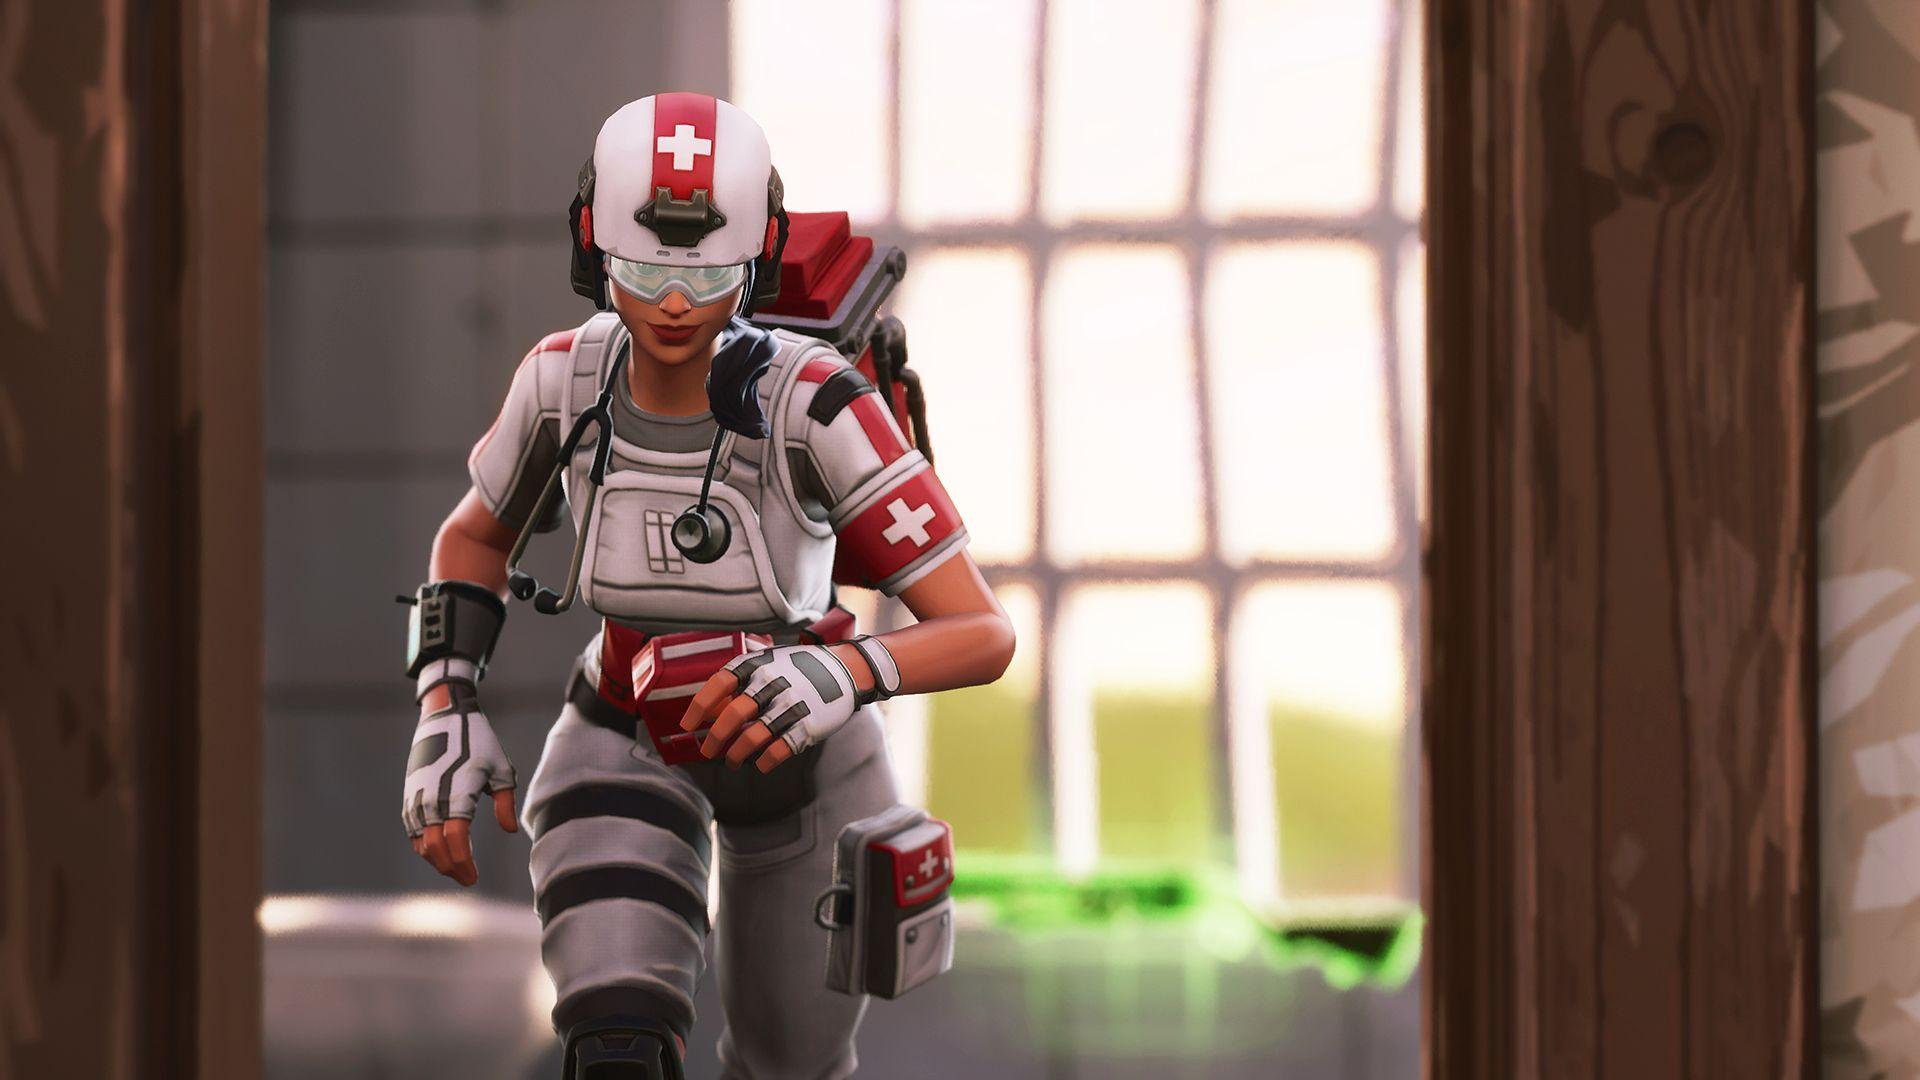 Field Surgeon Fortnite Outfit Skin How to Get + Info